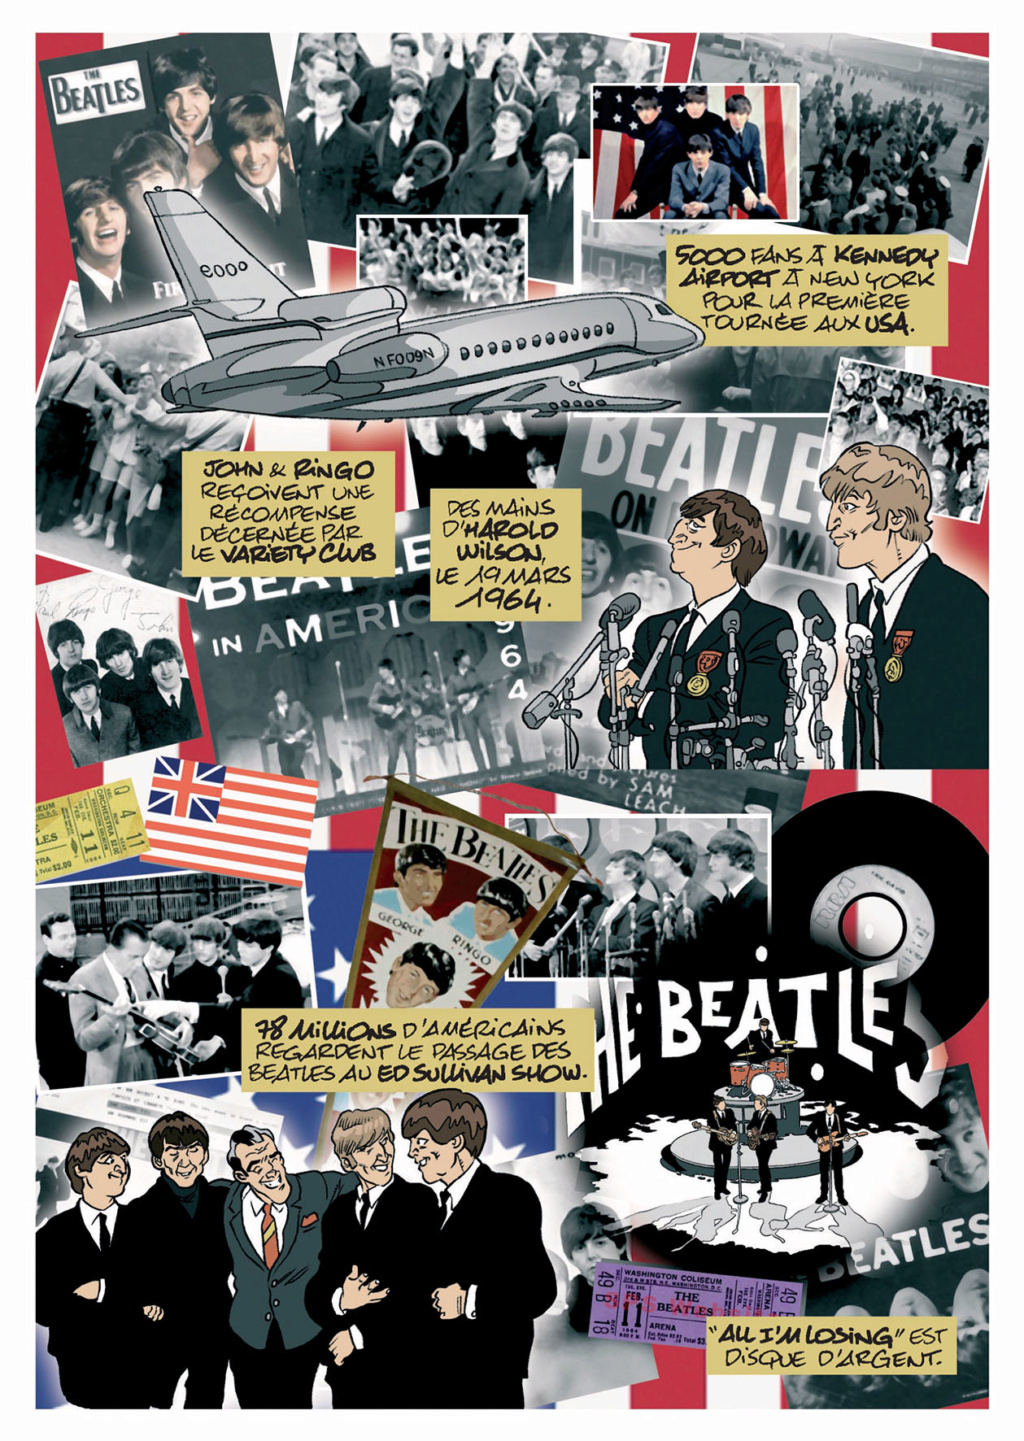 THE BEATLES 97910913